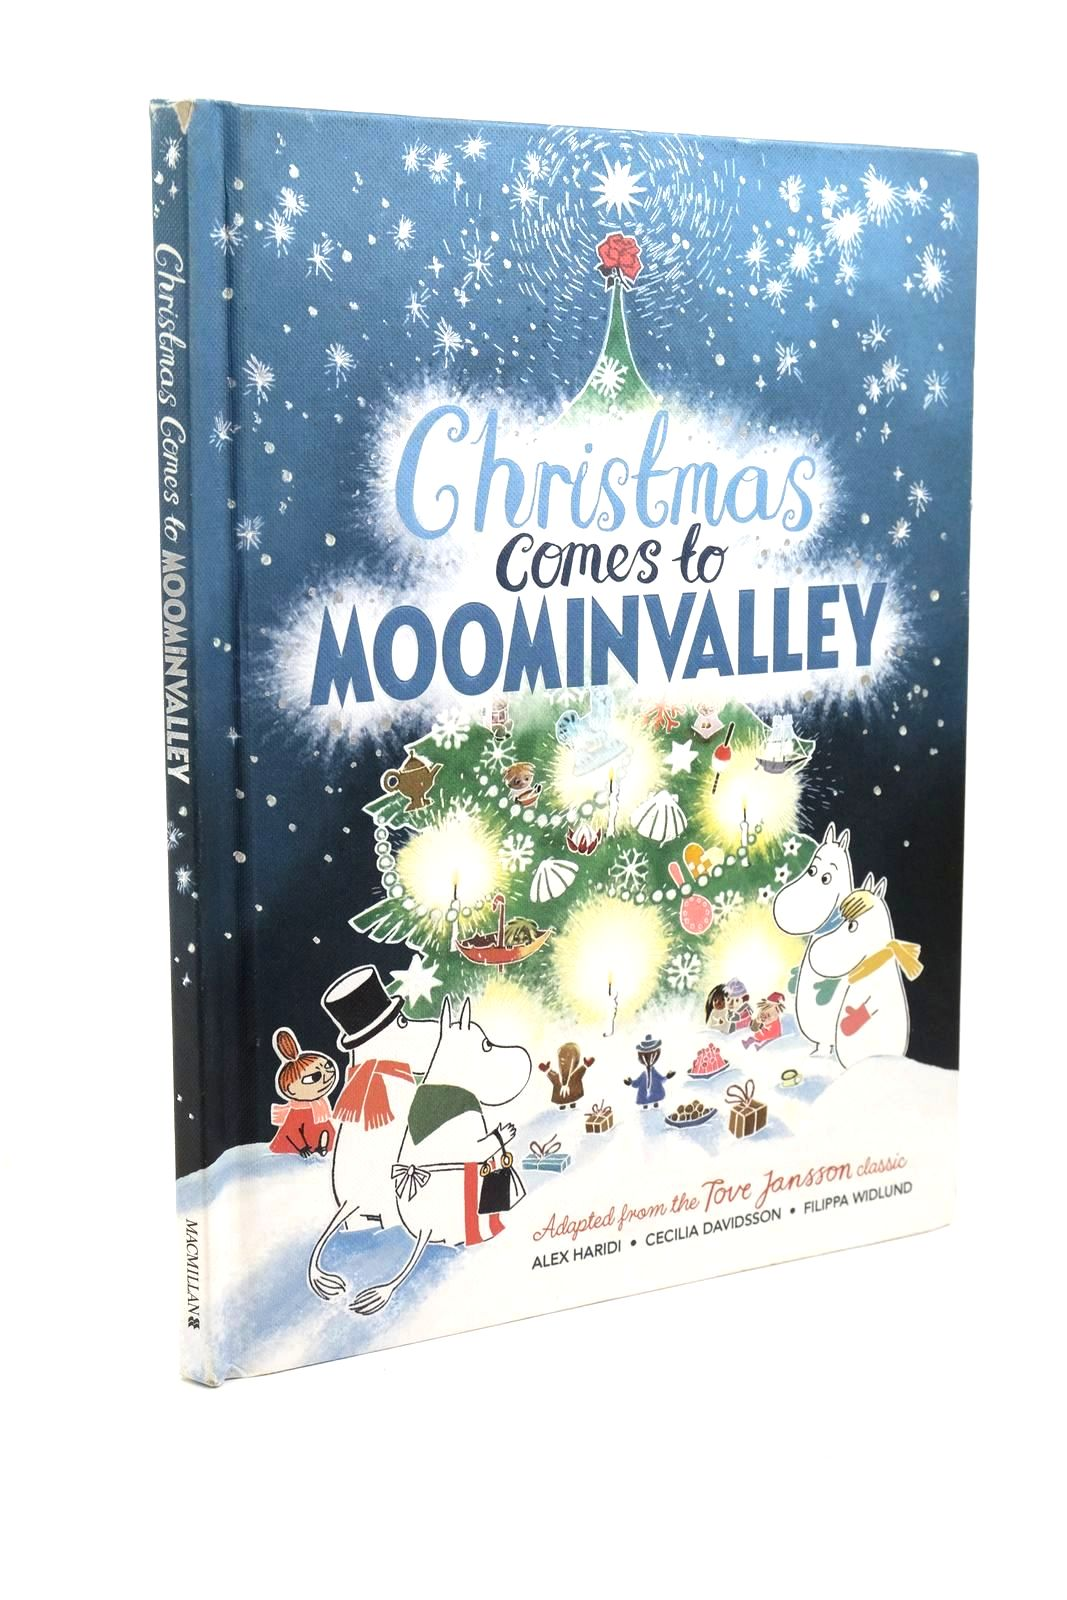 Photo of CHRISTMAS COMES TO MOOMINVALLEY written by Haridi, Alex Davidsson, Cecilia illustrated by Widlund, Filippa published by Macmillan Children's Books (STOCK CODE: 1321440)  for sale by Stella & Rose's Books